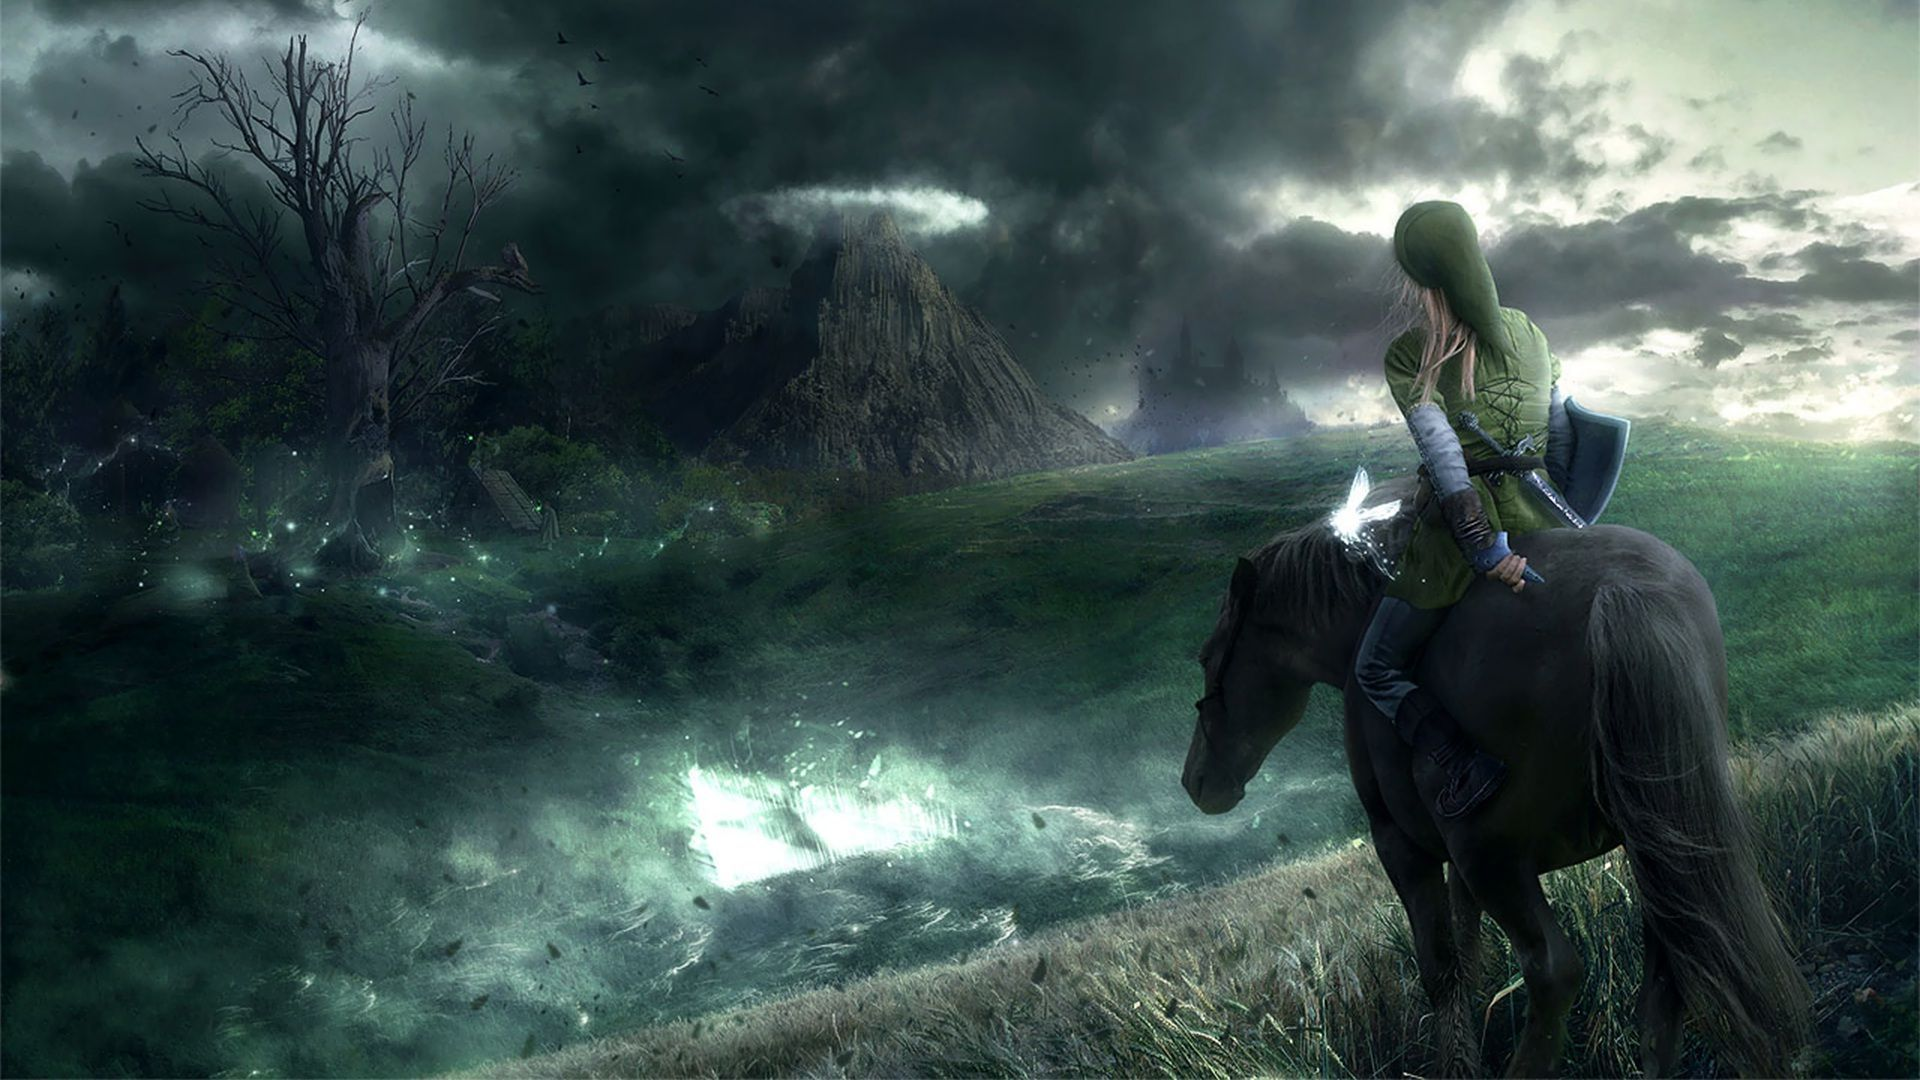 Zelda Wallpaper HD Wallpapers Backgrounds Images Art Photos 1920x1080